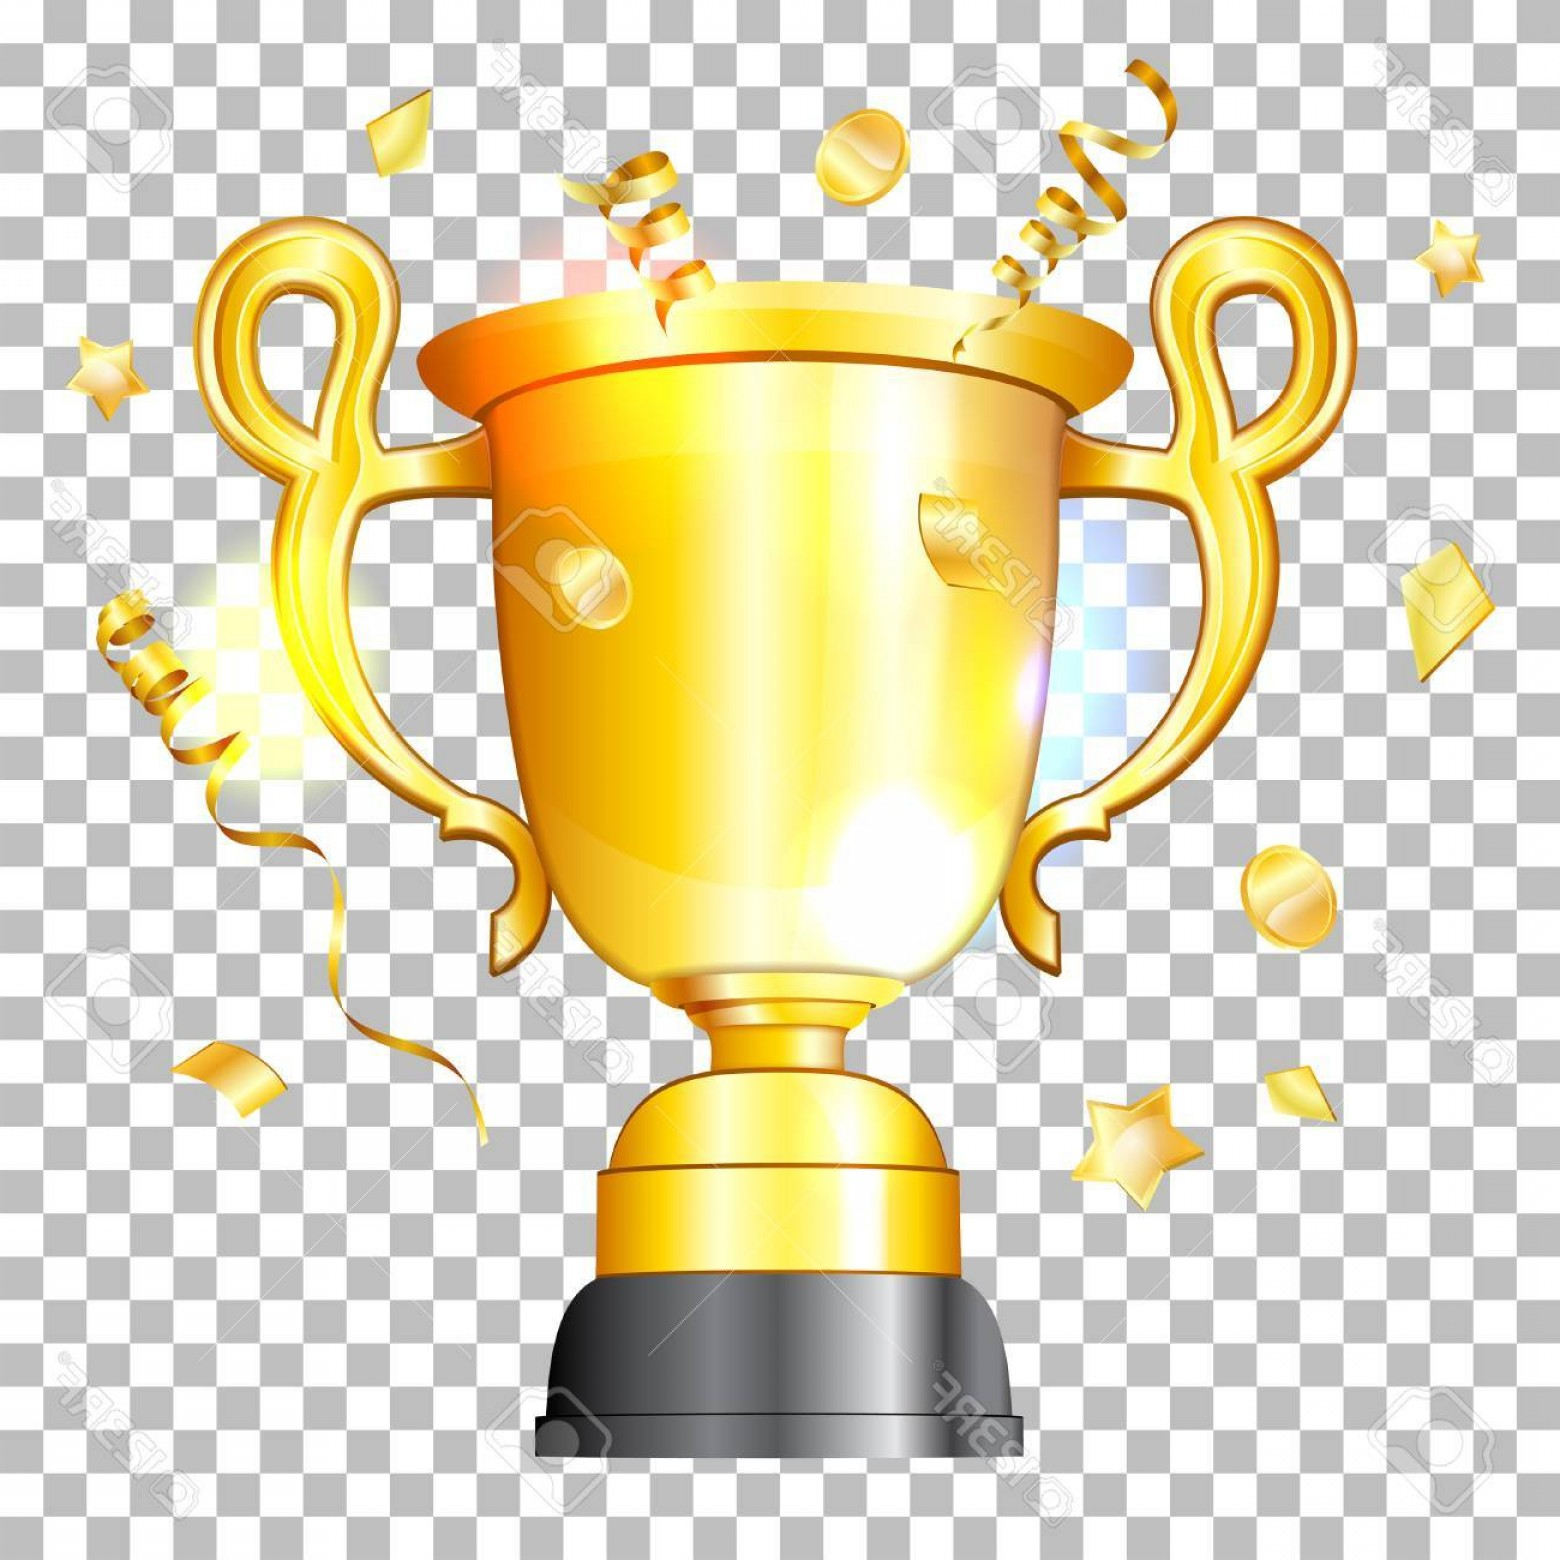 3D Vector Award Winner: Photostock Vector Award Winner Concept Gold Trophy In Realistic D Style With Streamers And Confetti On Transparent Ba